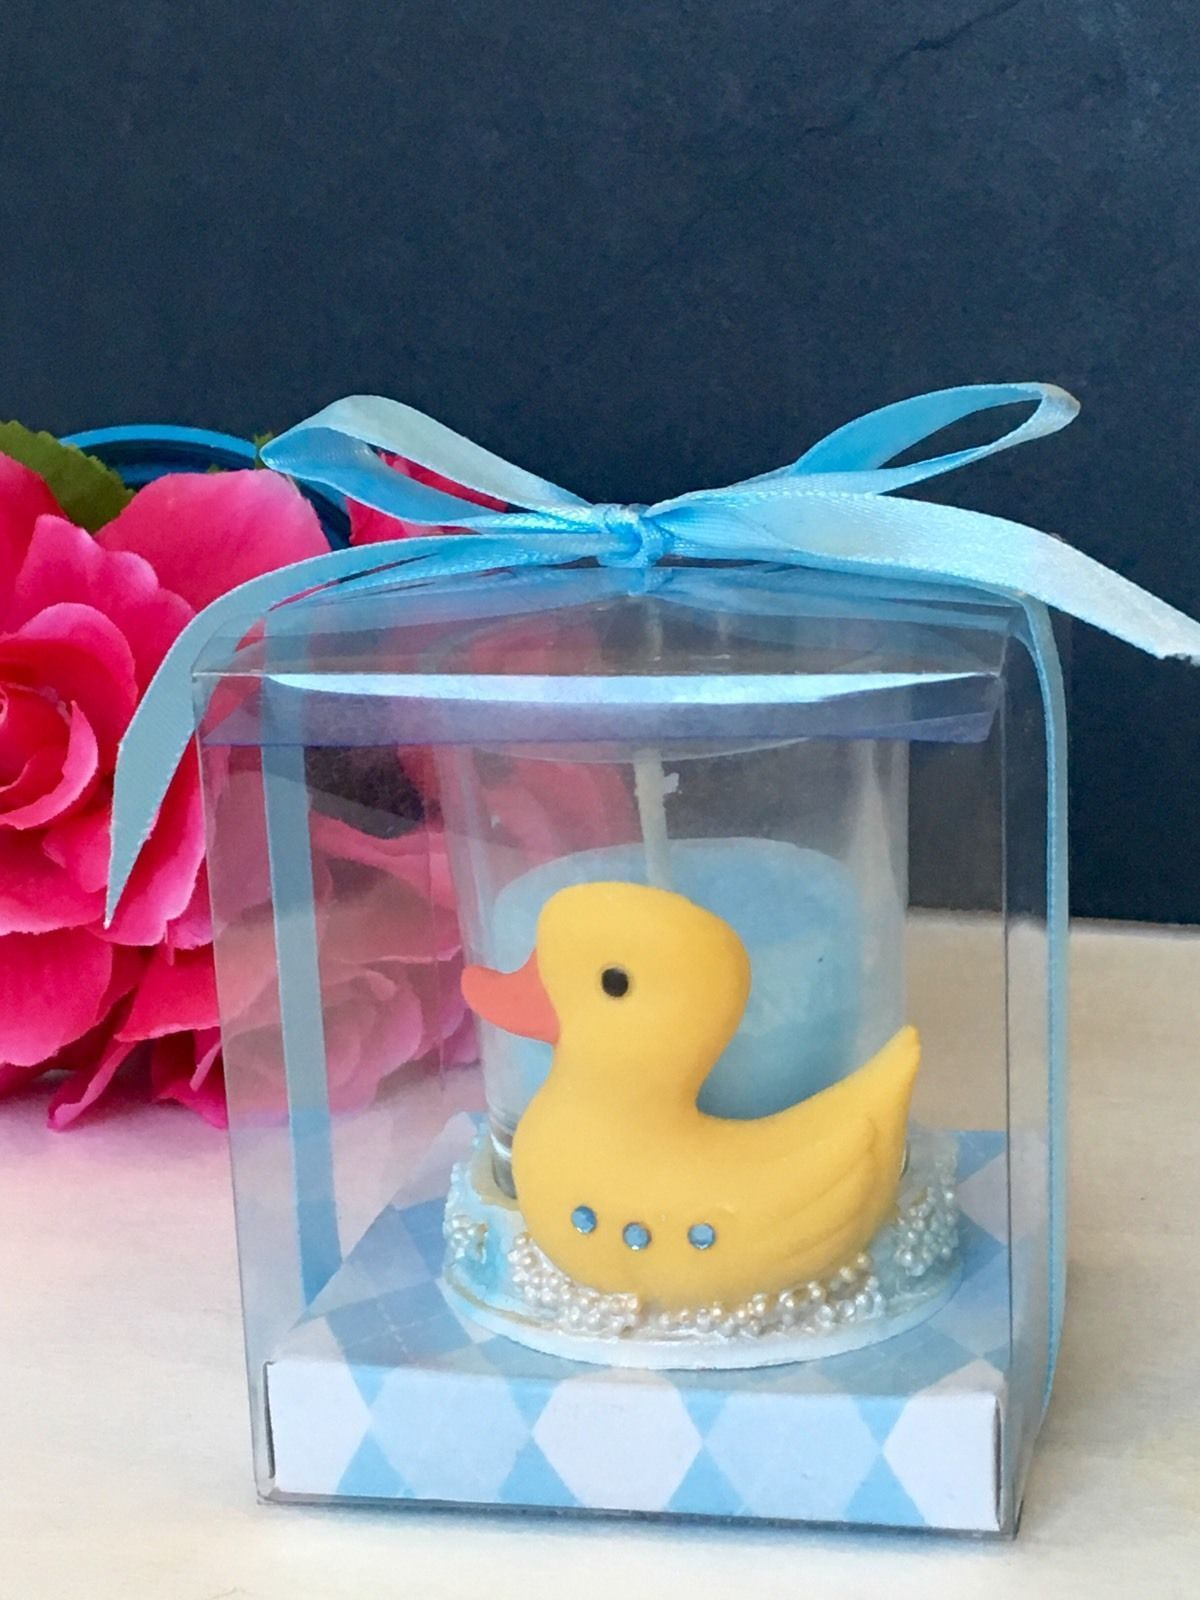 details about 12 baby shower table decorations duck candles party rh pinterest com